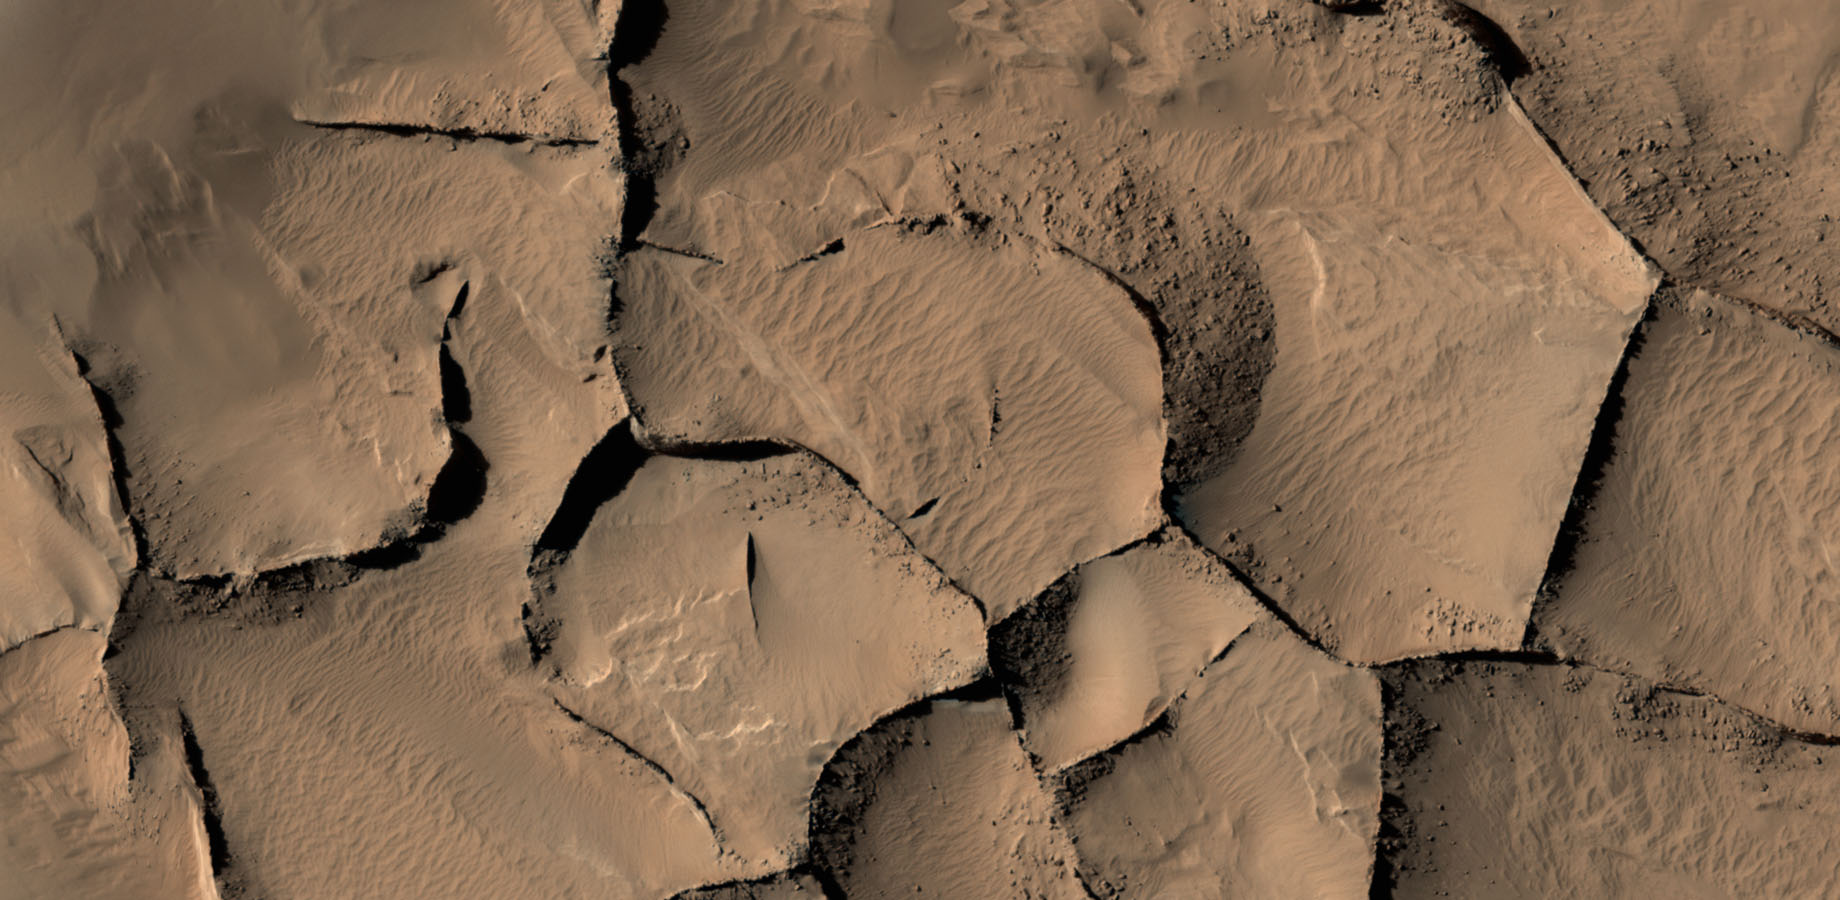 This view shows part of an area on Mars where narrow rock ridges, some as tall as a 16-story building, intersect at angles forming corners of polygons.